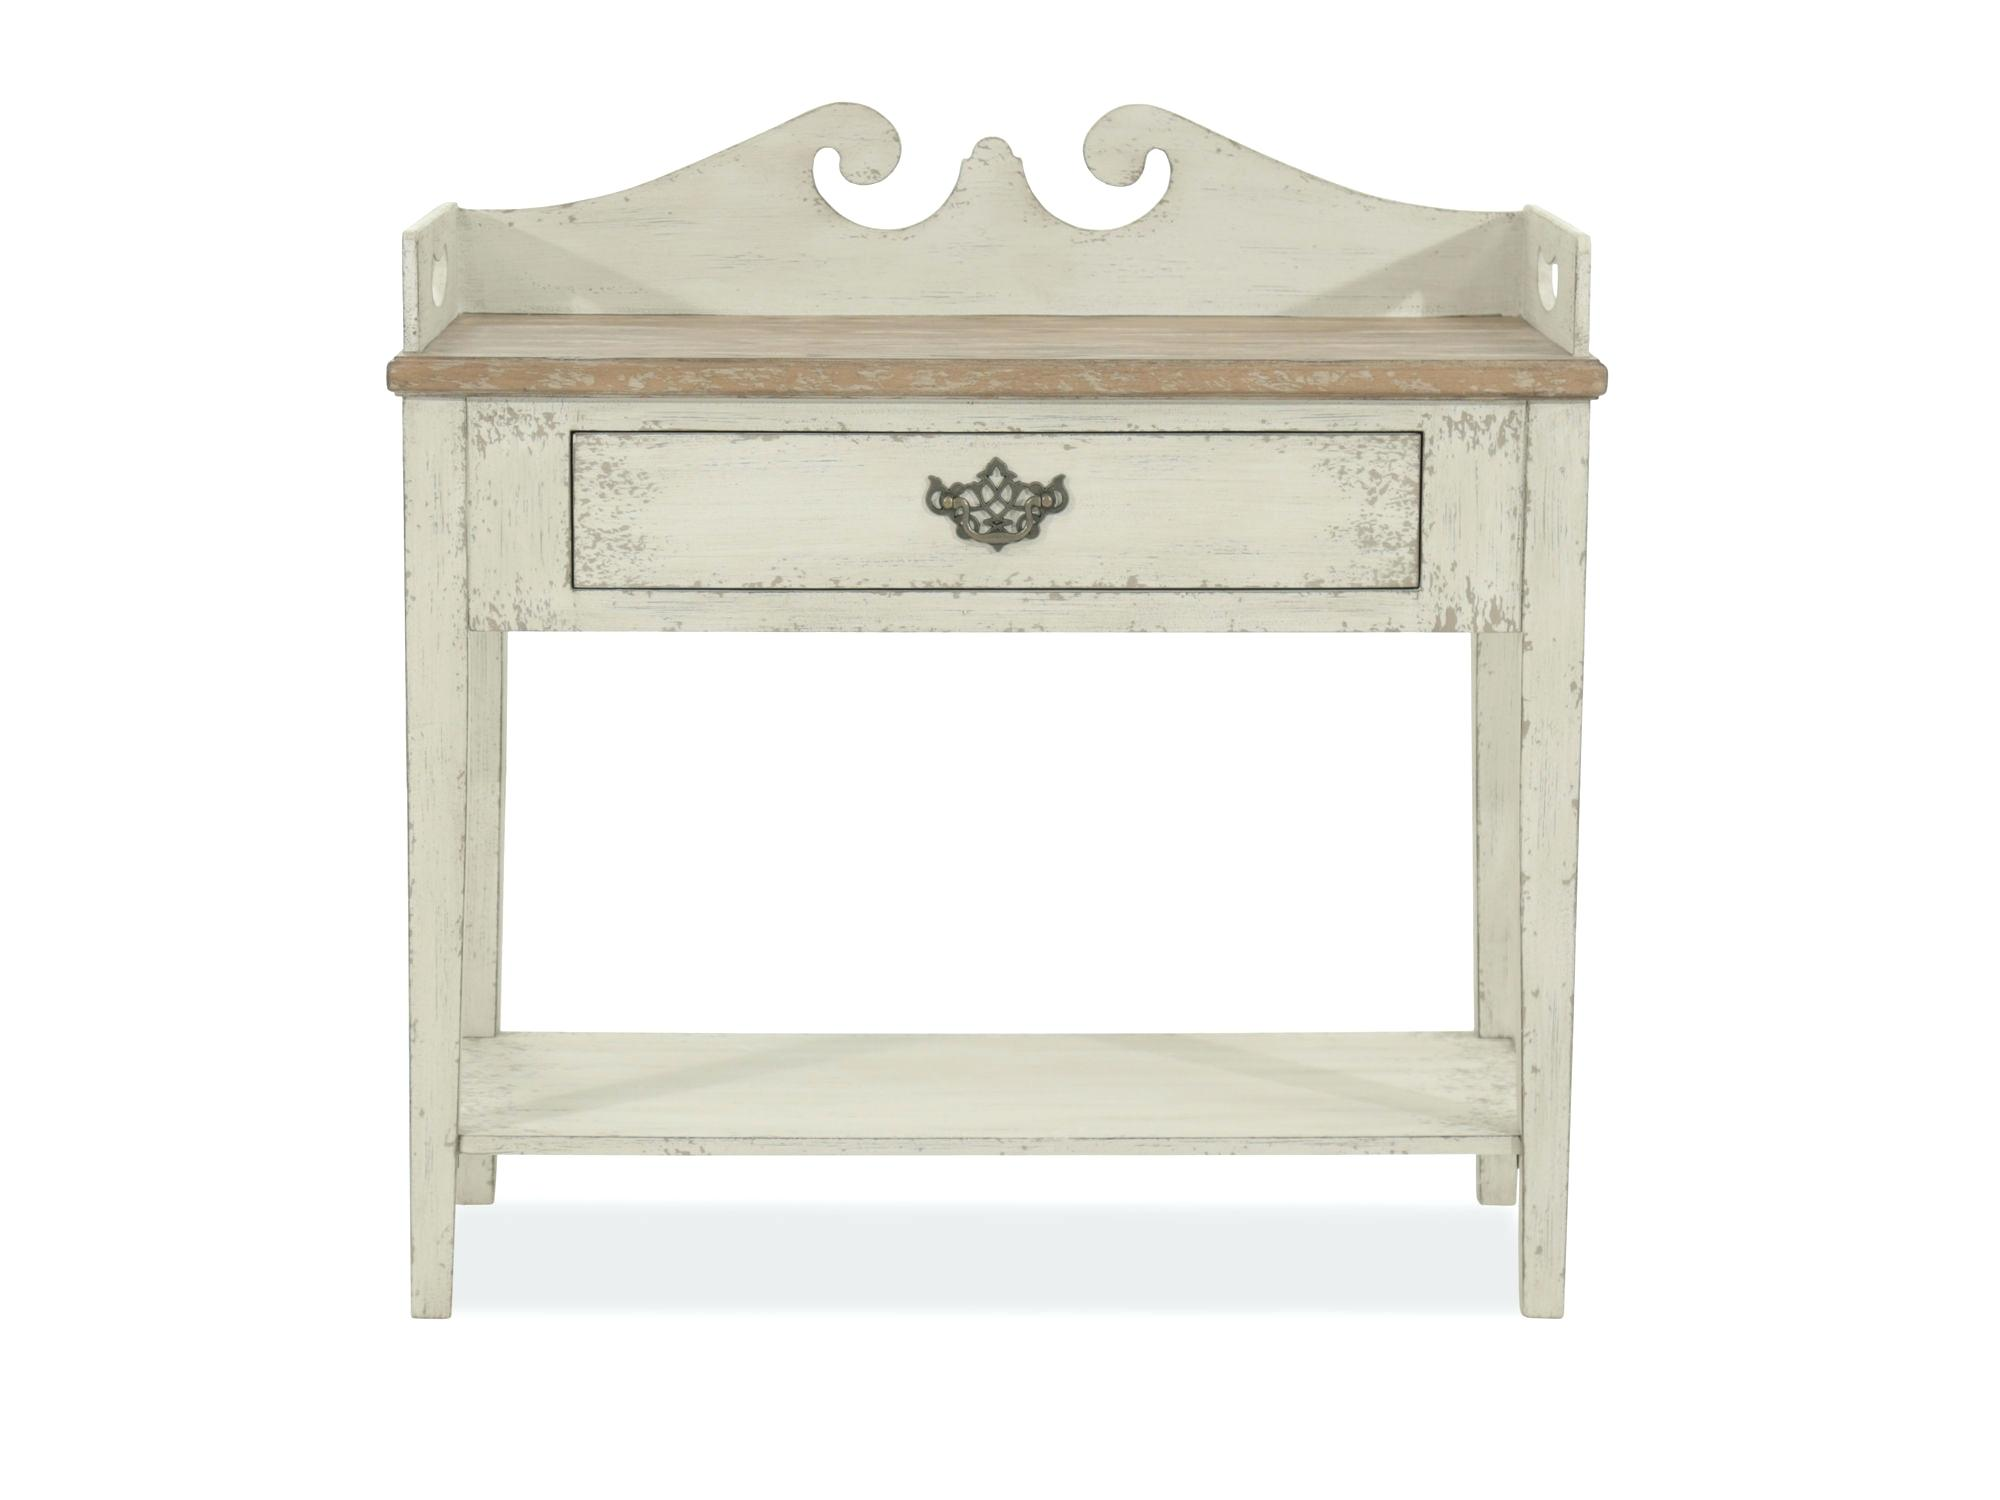 grey accent table night stands small gallery rail traditional weathered dark gray fretwork threshold end tables from target teal decorative accessories bunnings swing set drum